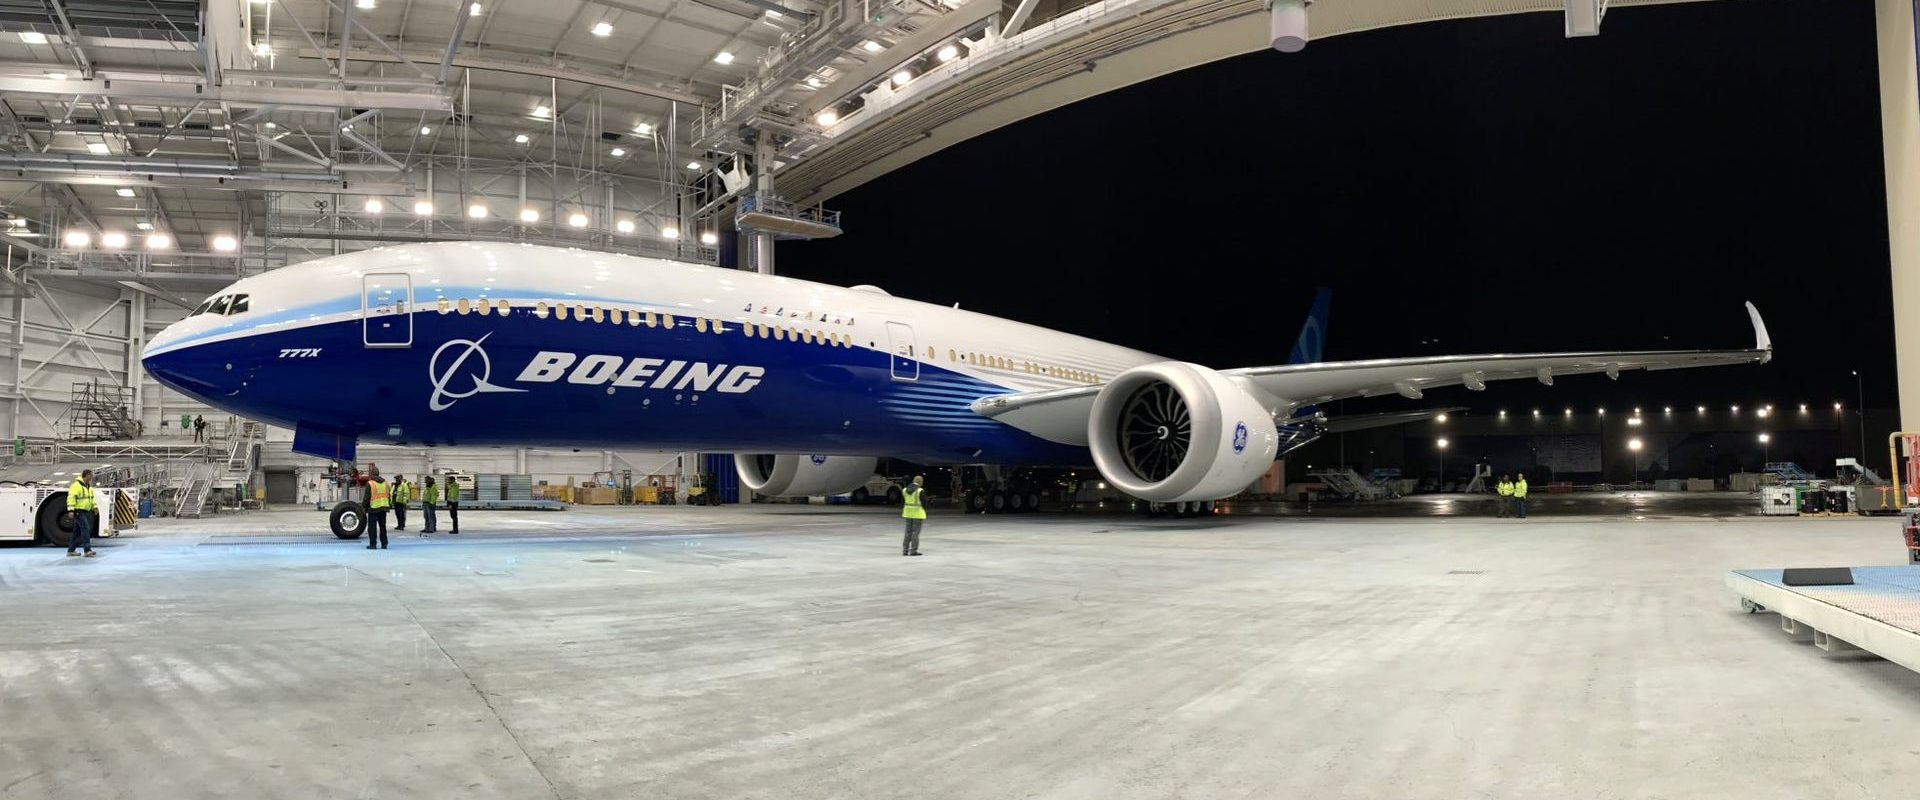 Boeing situation